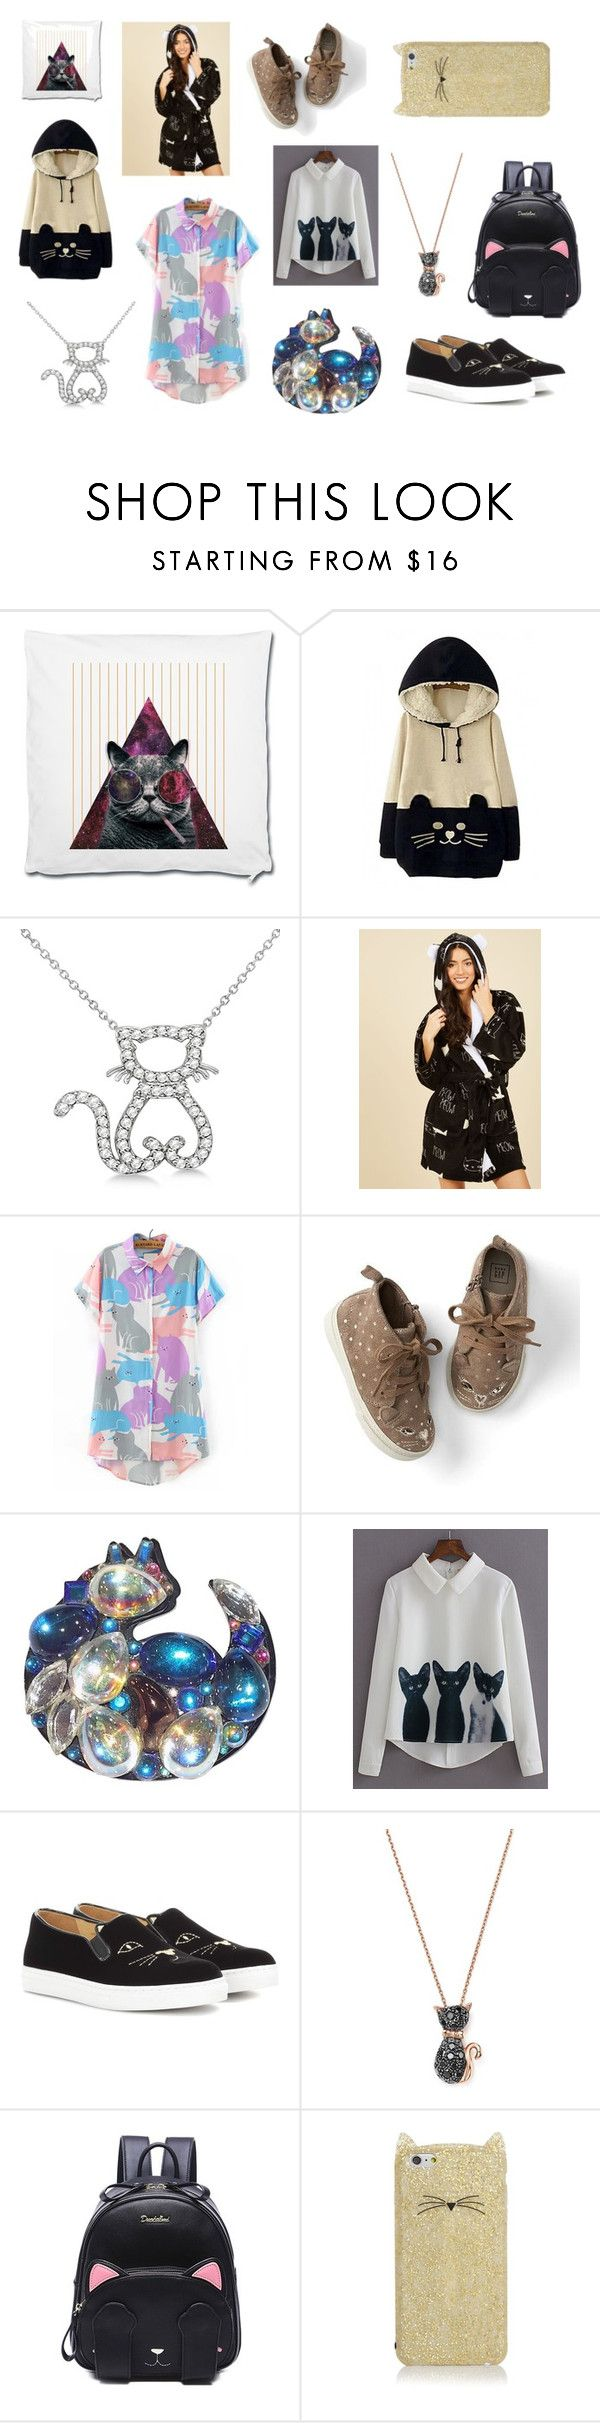 """Who Rules the World? Cat Ladies!"" by awesomeanimalover ❤ liked on Polyvore featuring WithChic, Allurez, Gap, Charlotte Olympia, Bloomingdale's and Kate Spade"